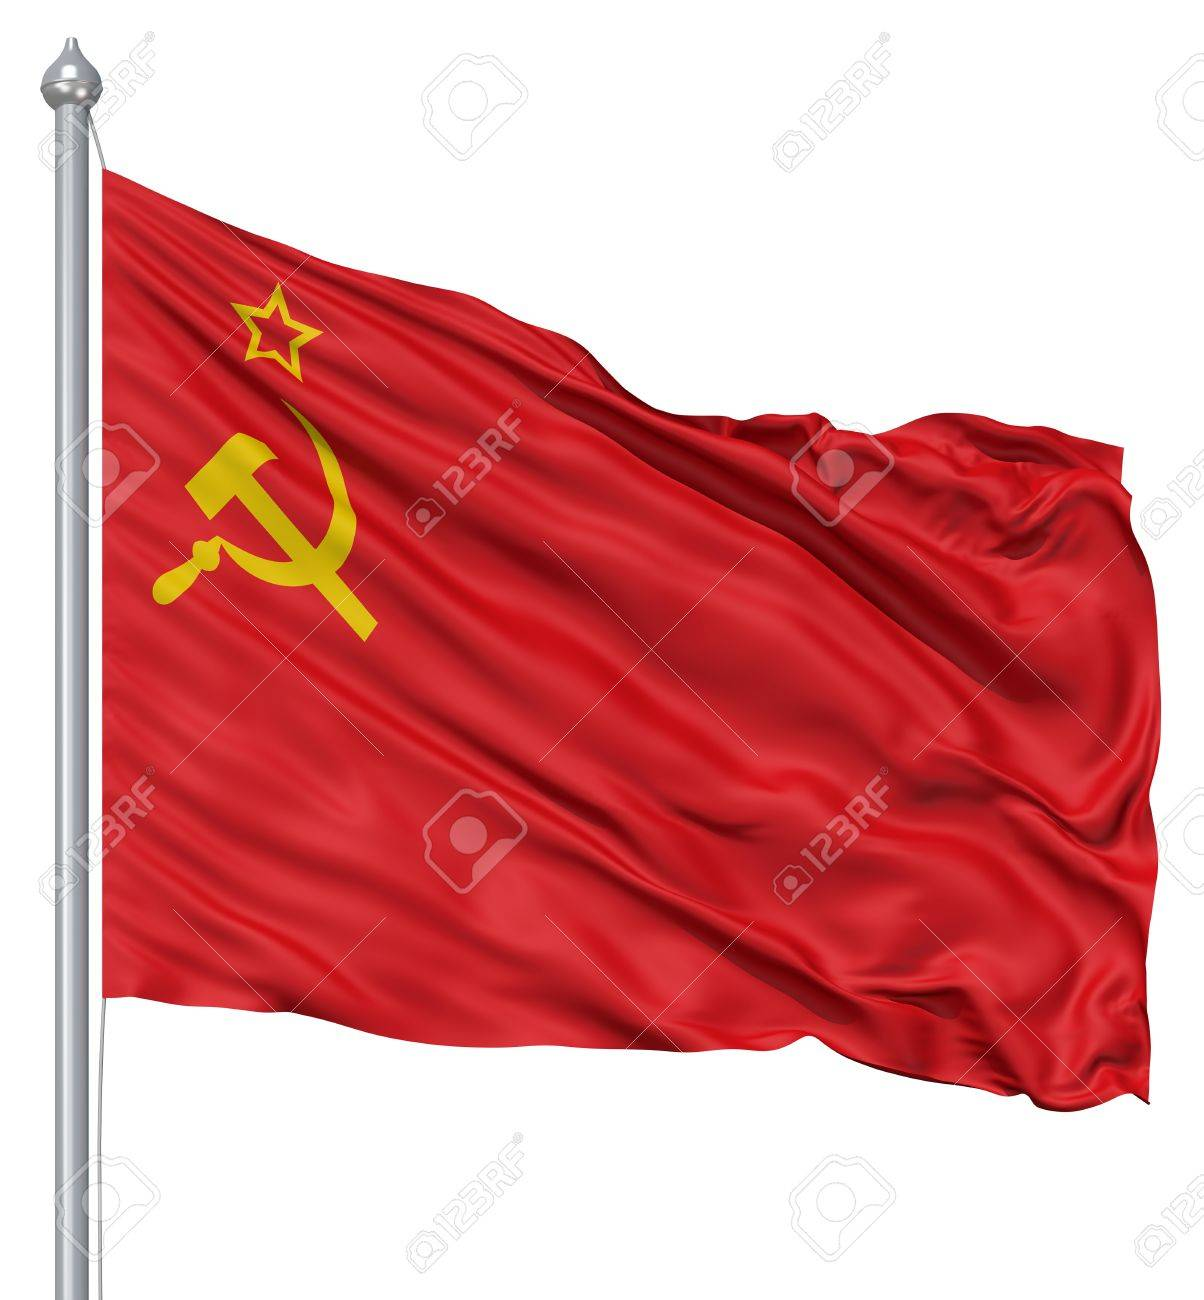 USSR national flag waving in the wind Stock Photo - 12994771